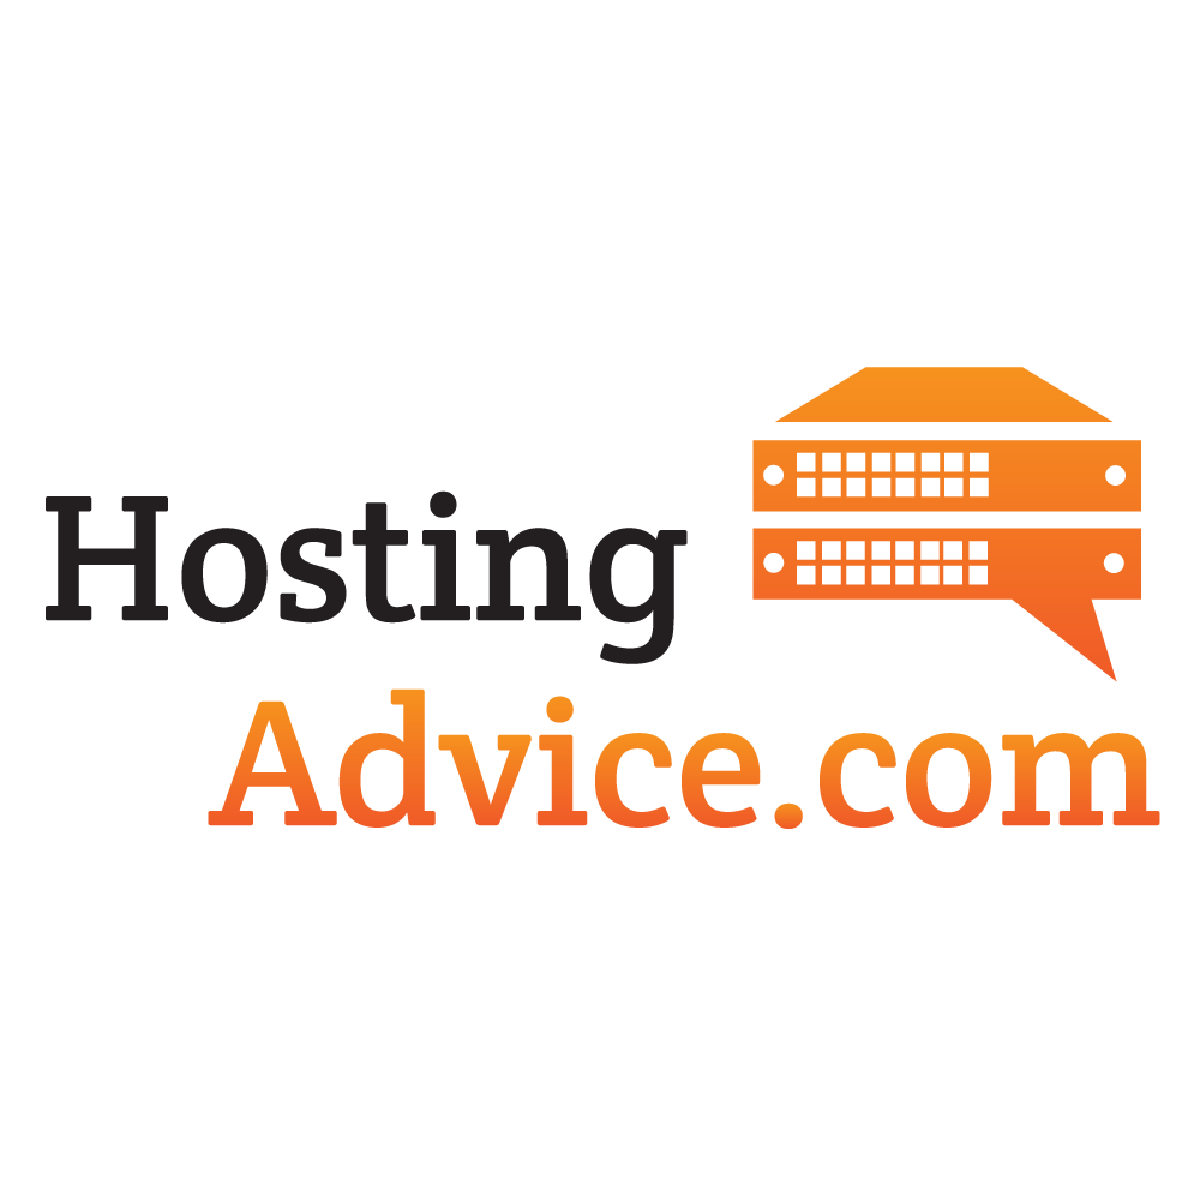 WPWebHost provides fast and secure managed WordPress hosting solutions.